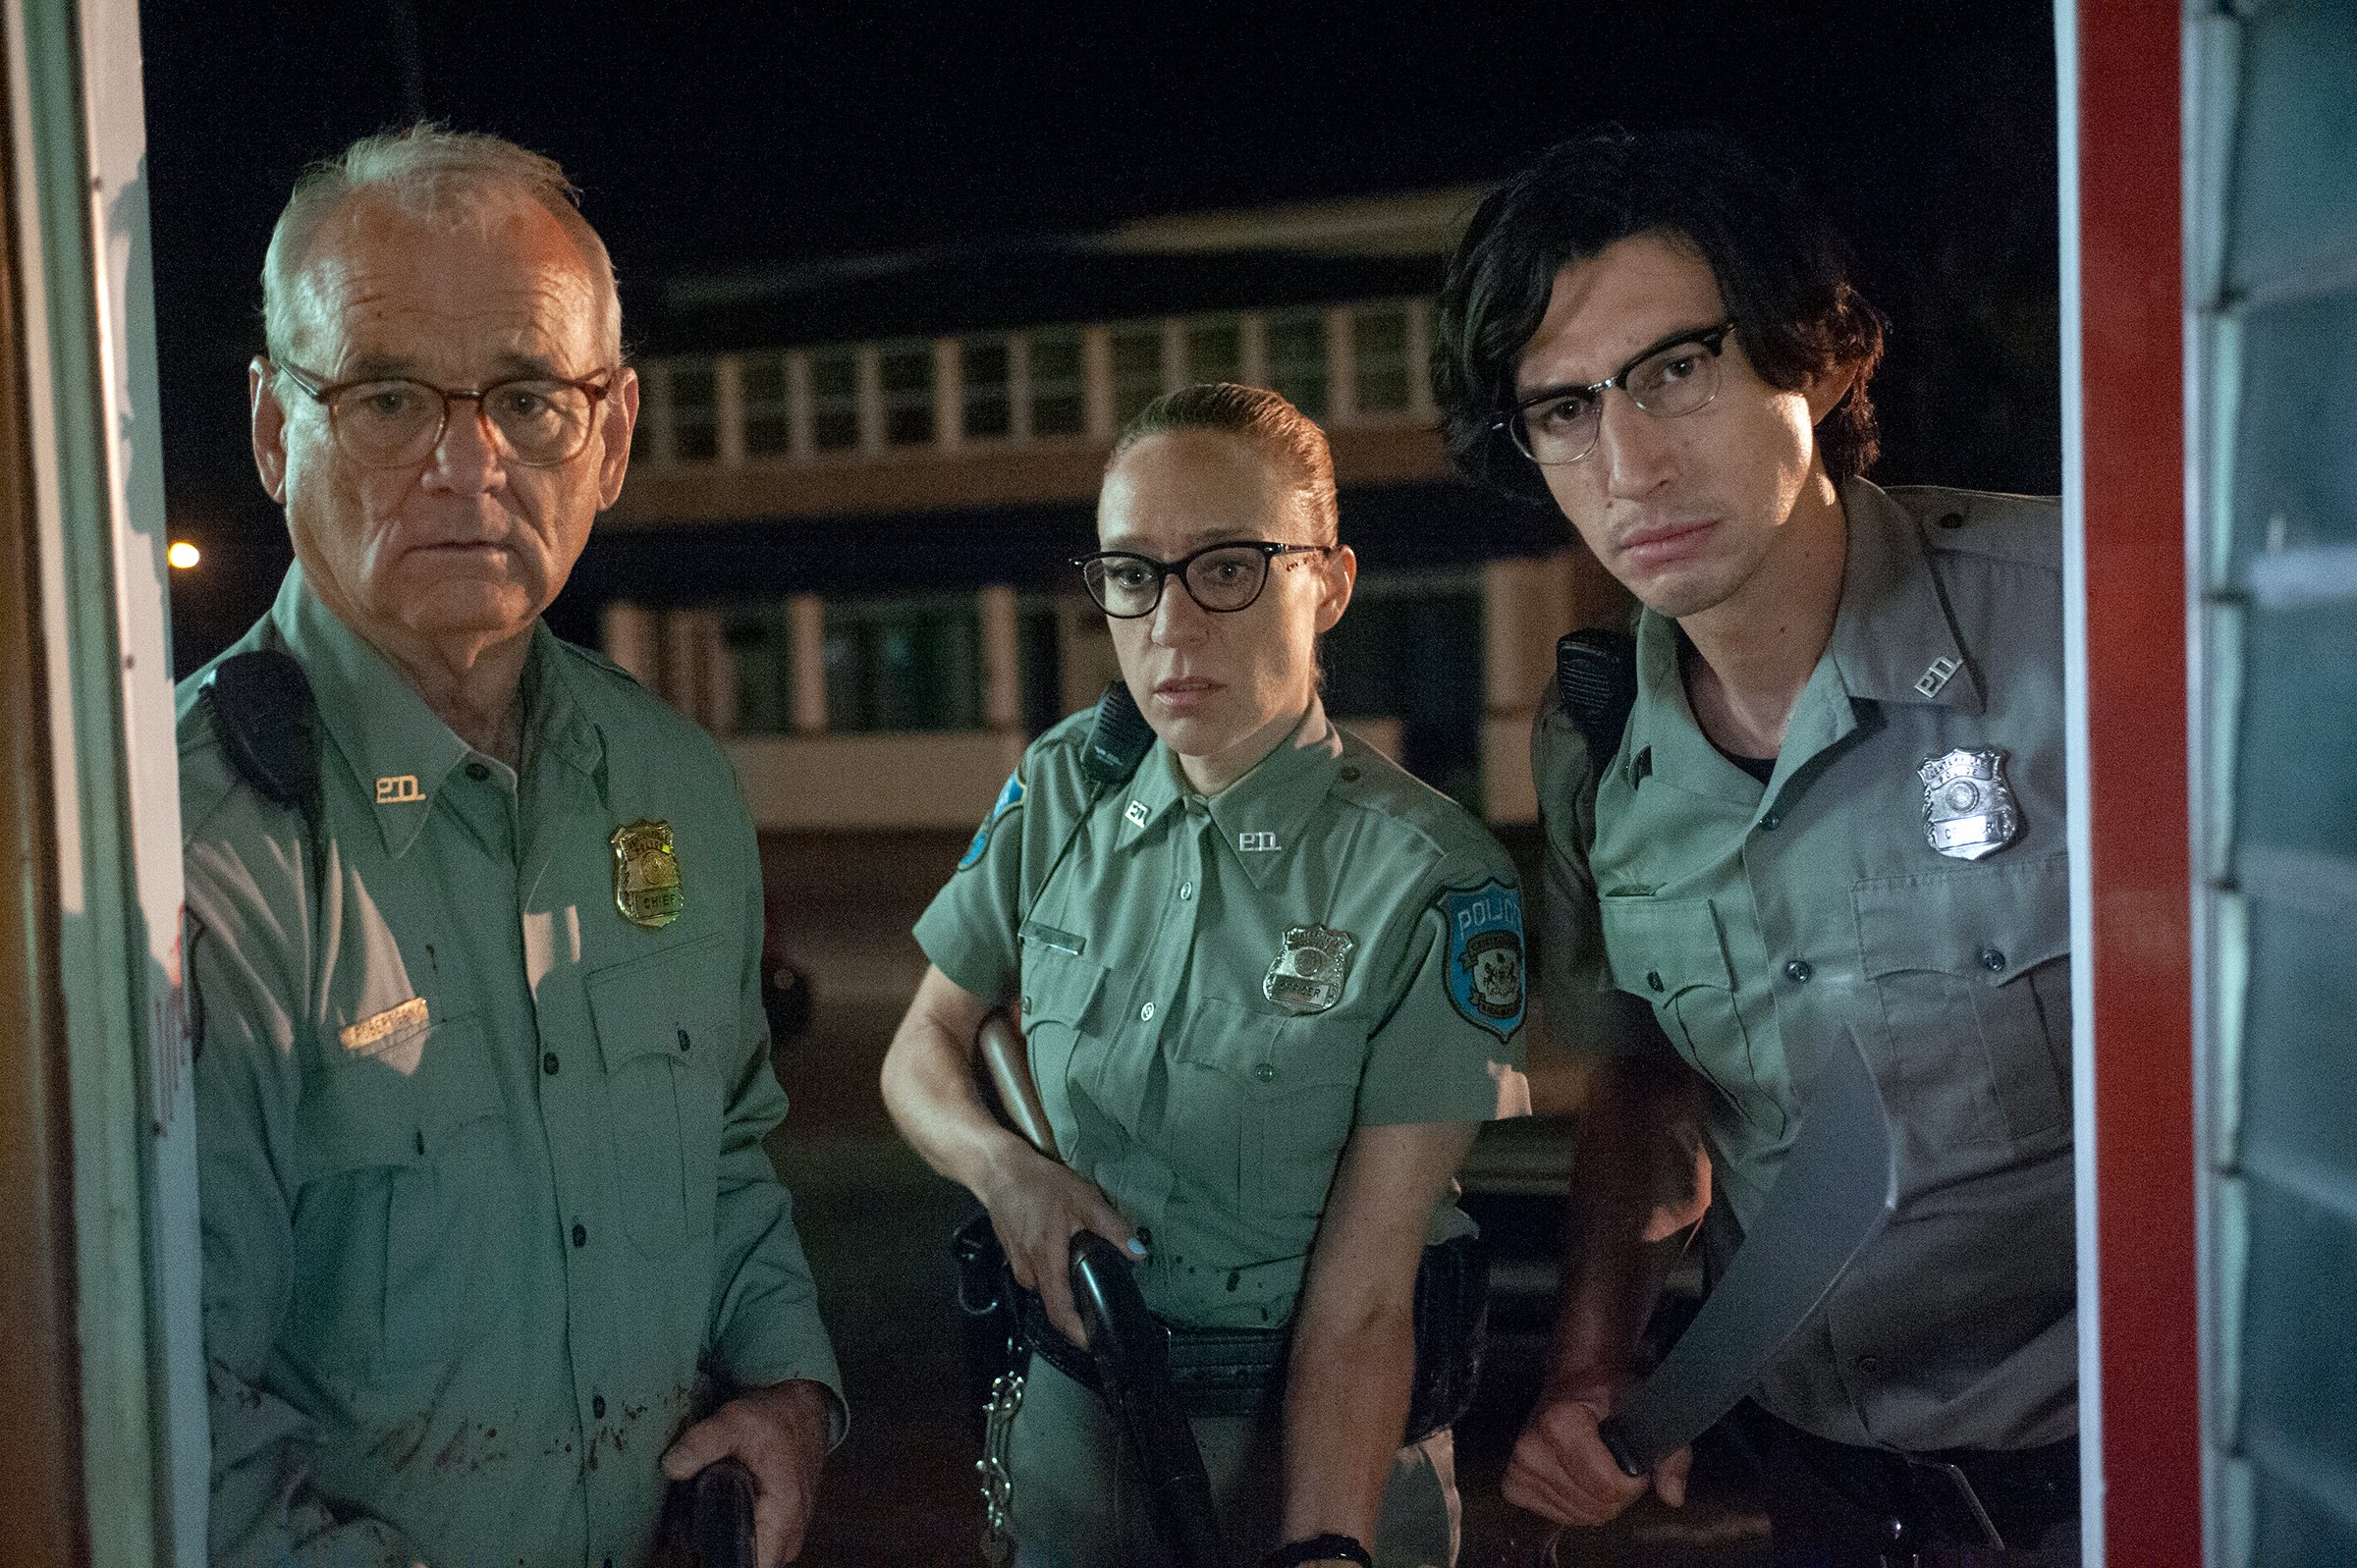 """(L to R) Bill Murray as """"Officer Cliff Robertson"""", Chloë Sevigny as """"Officer Minerva Morrison"""" and Adam Driver as """"Officer Ronald Peterson"""" in writer/director Jim Jarmusch's THE DEAD DON'T DIE"""